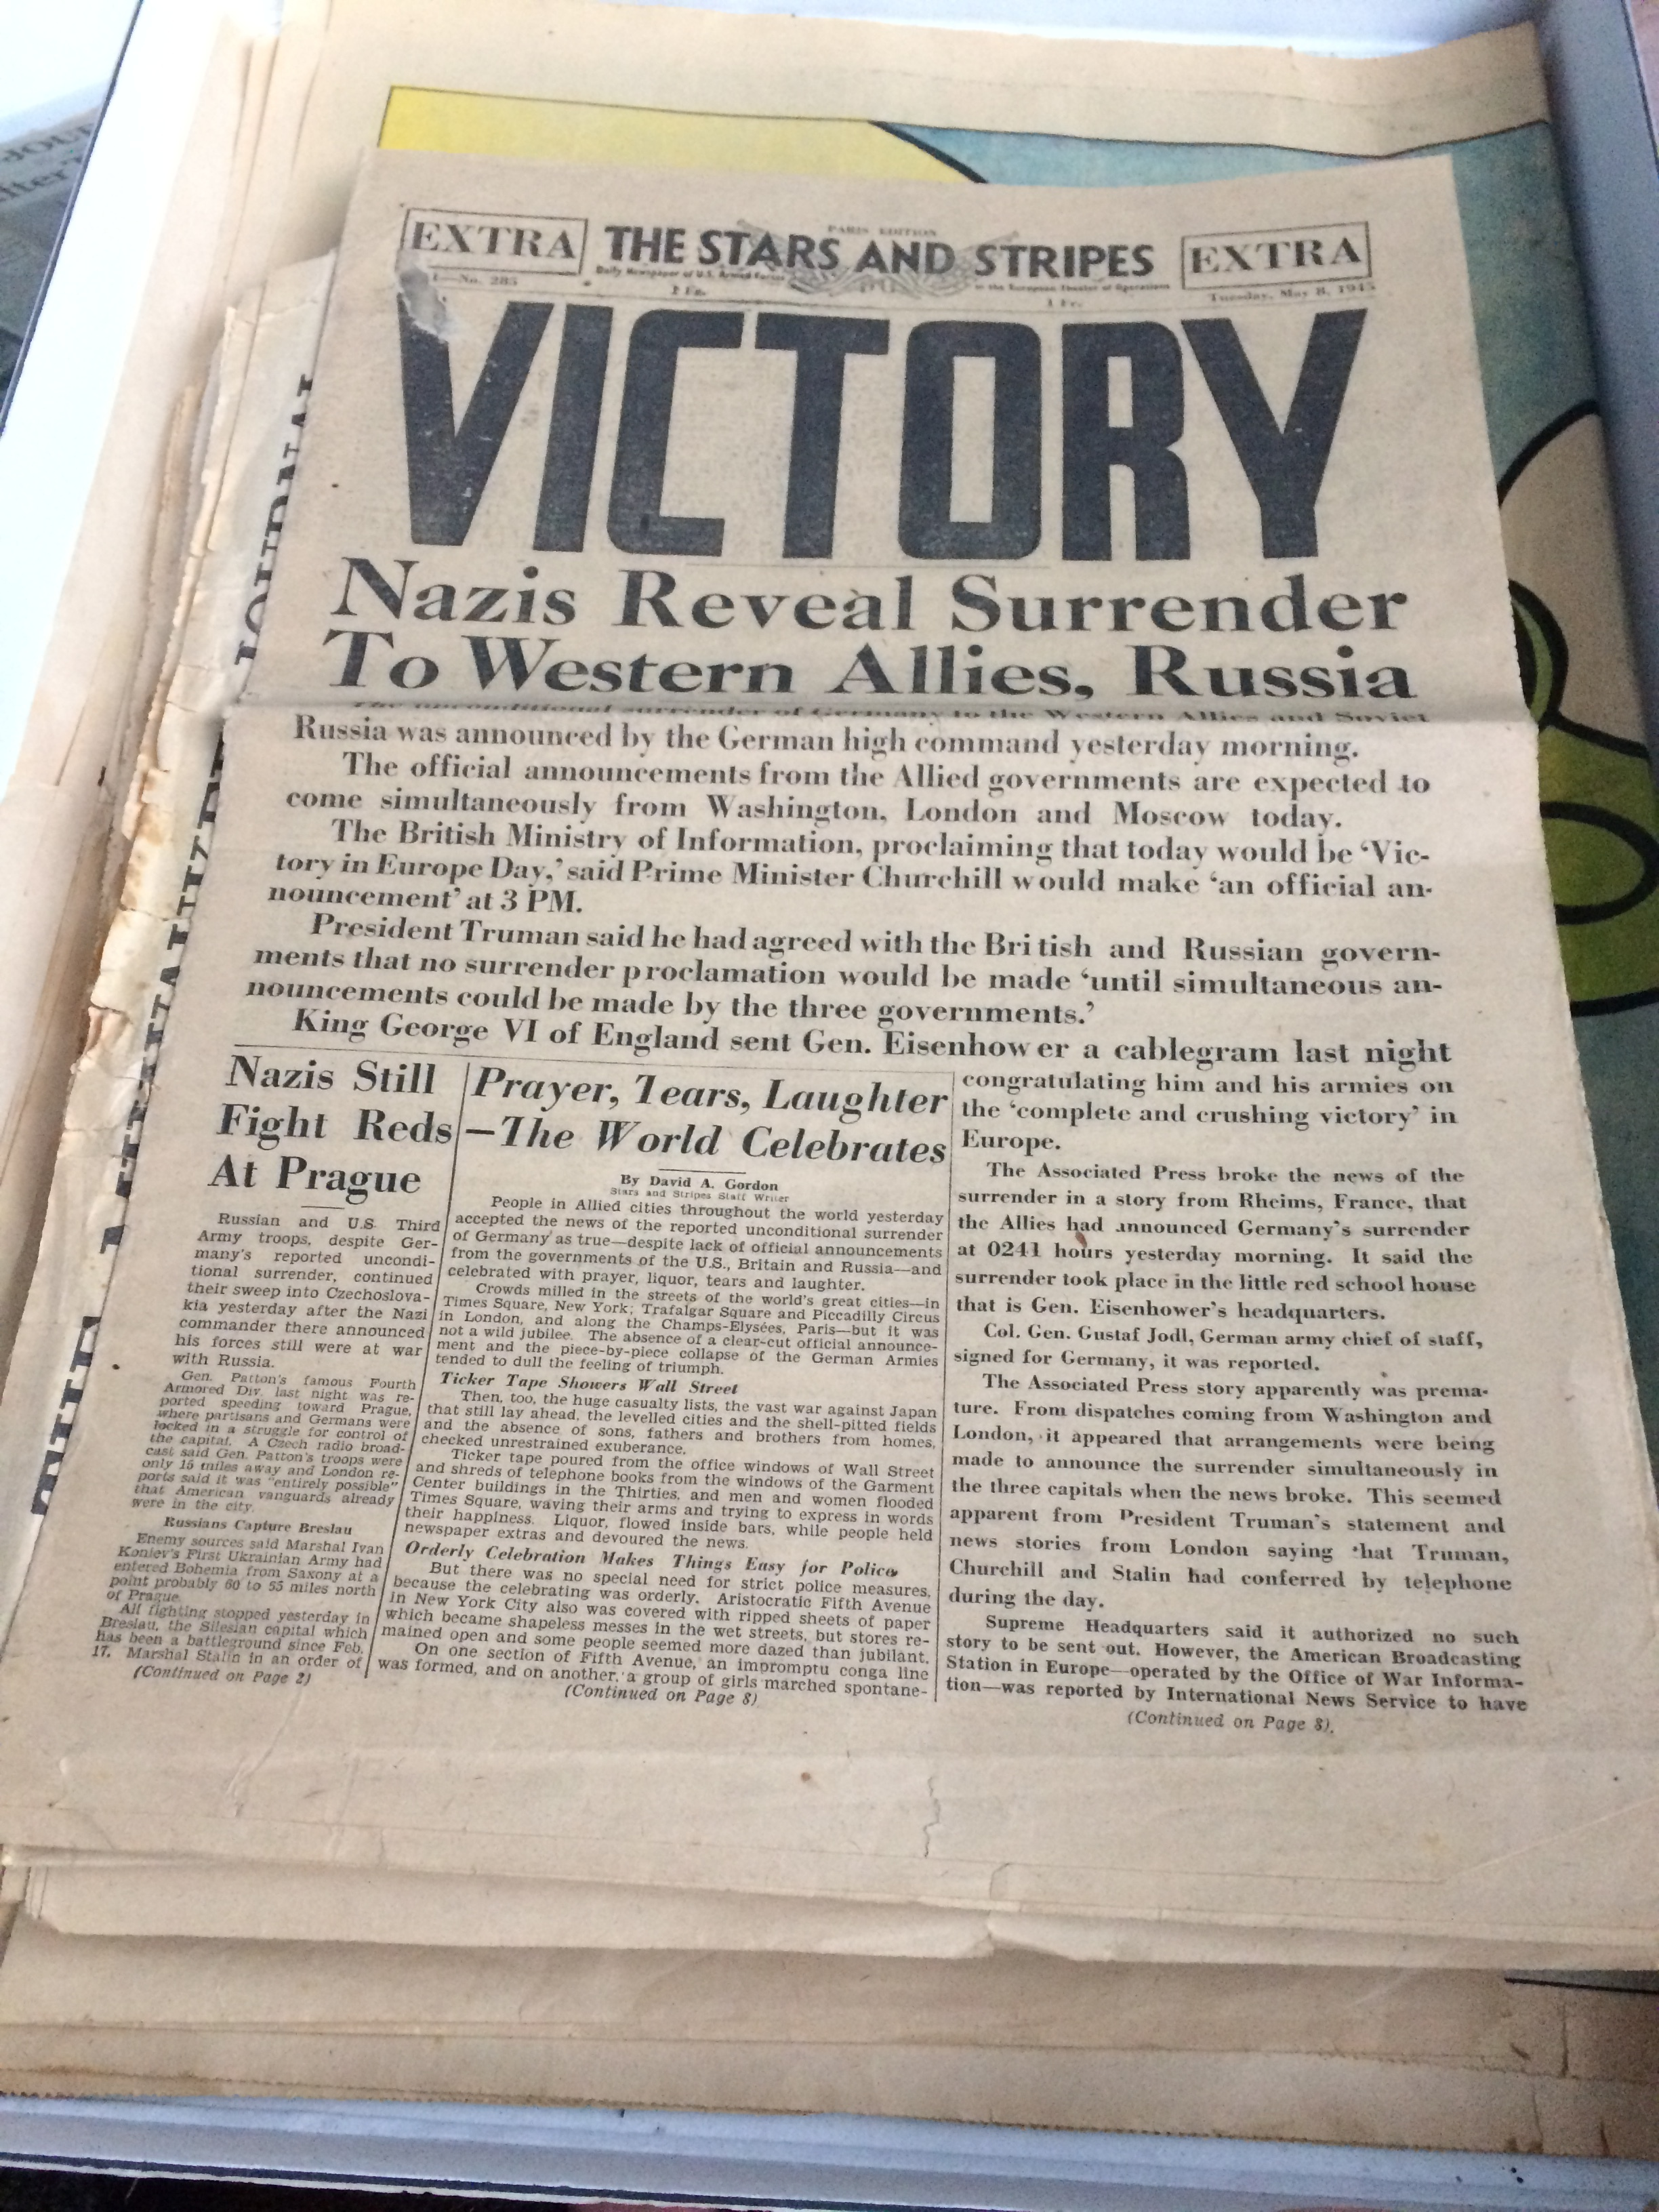 Newspaper from VE Day